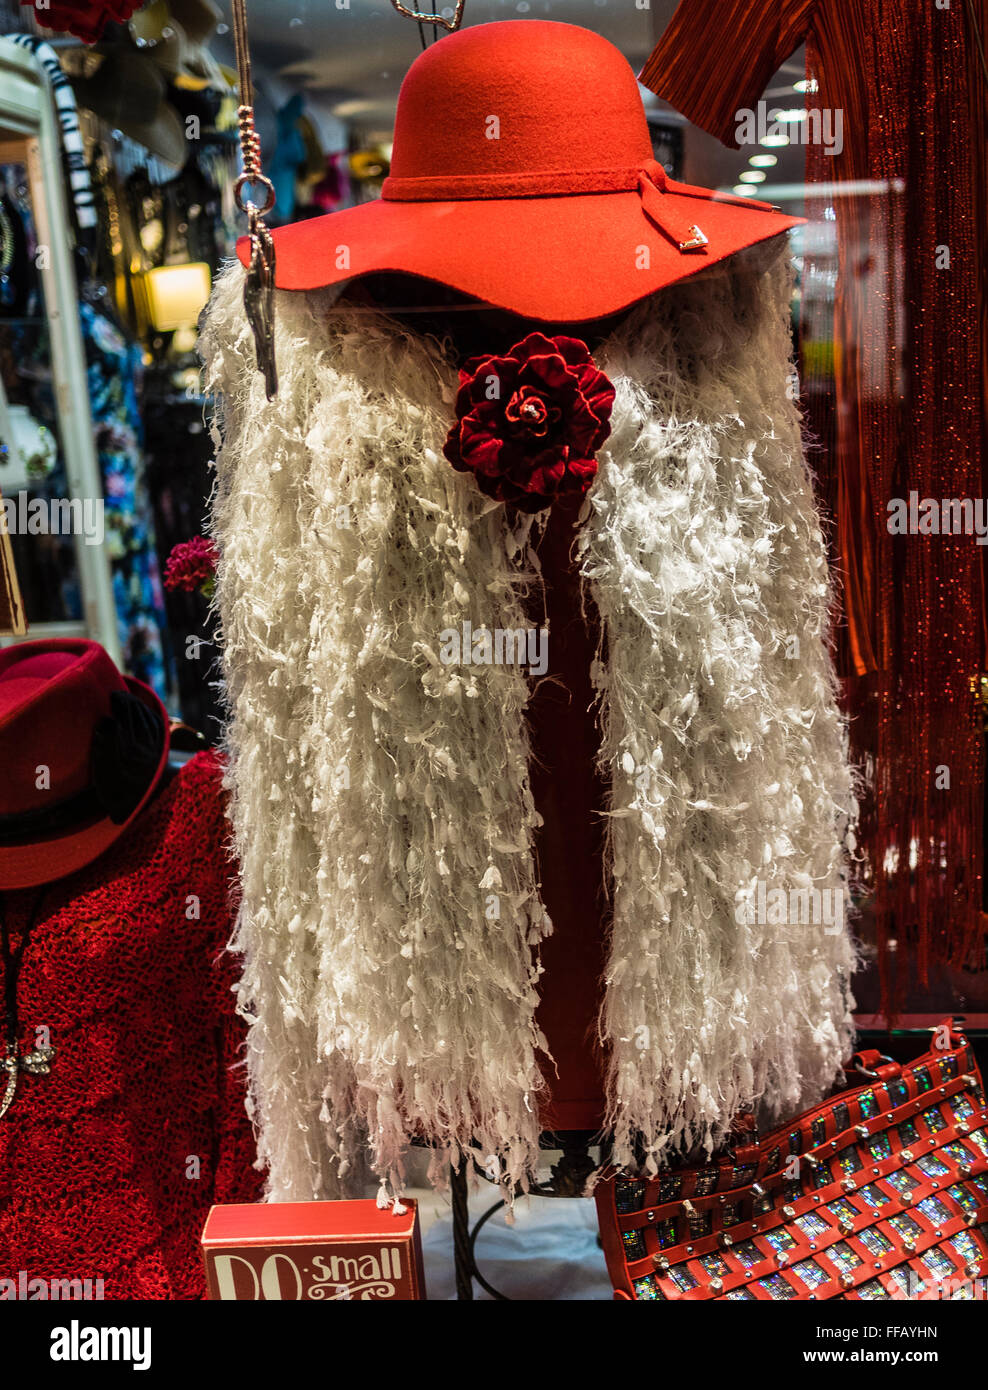 Woman's red hat and frilly white unusual vest, that could be worn as an over-the-top-scarf displayed in a clothing - Stock Image